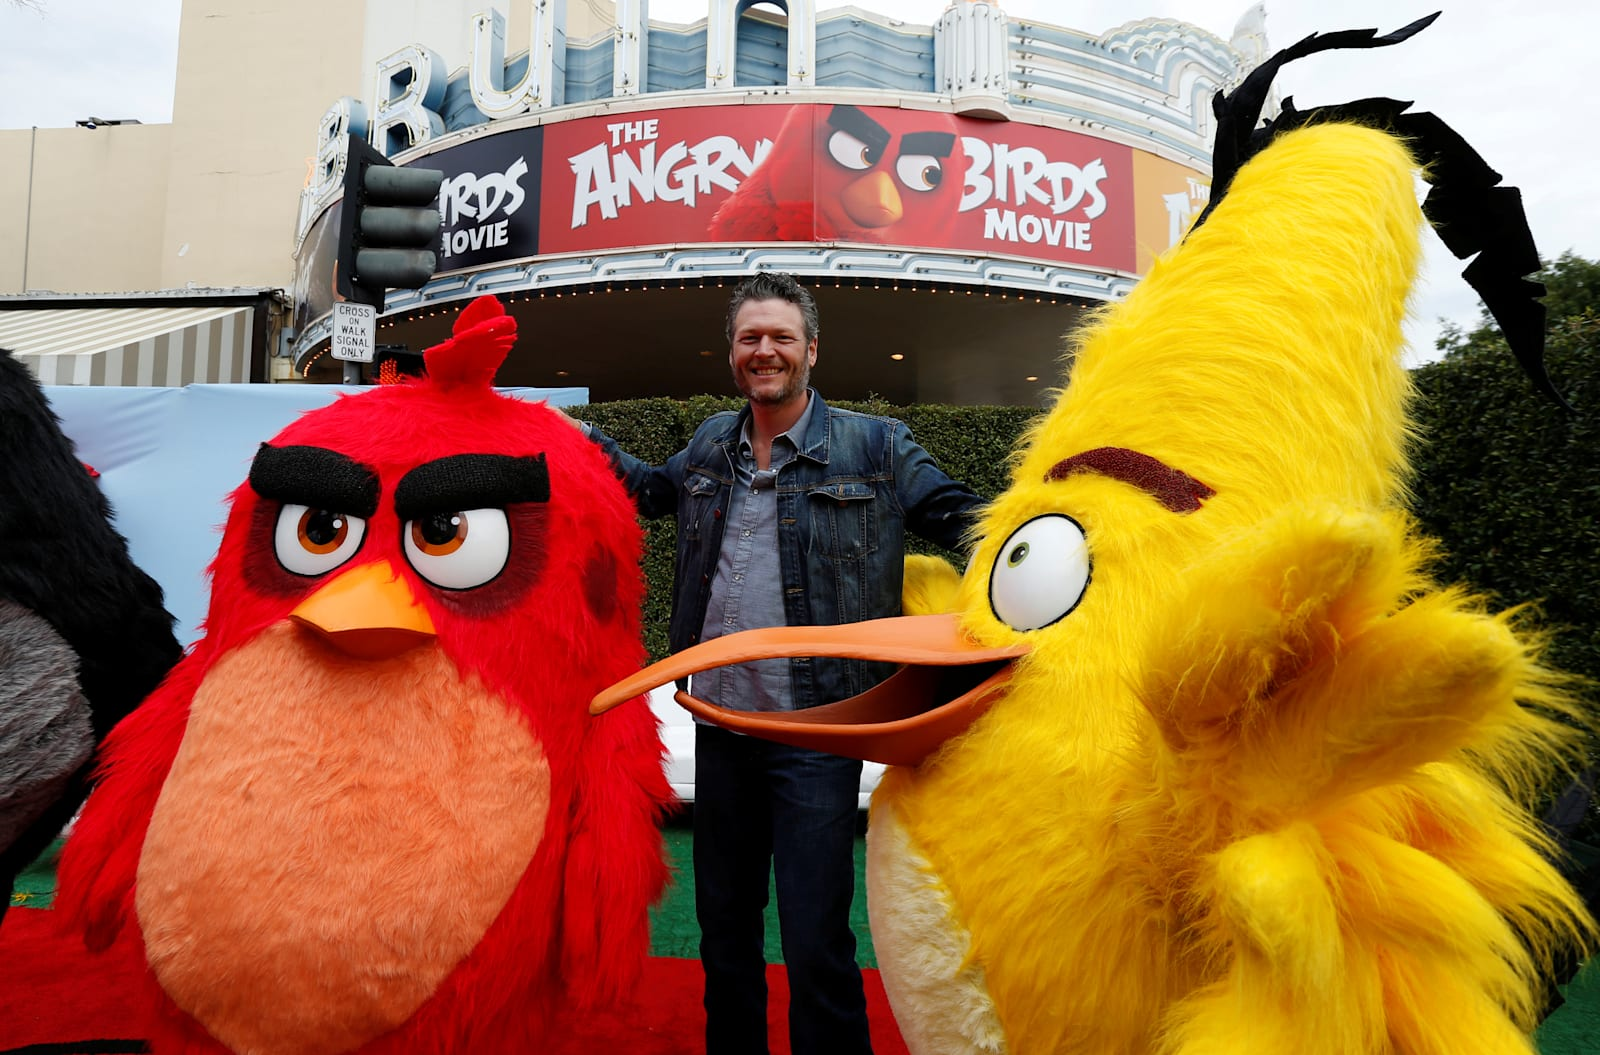 Yes, 'The Angry Birds Movie'